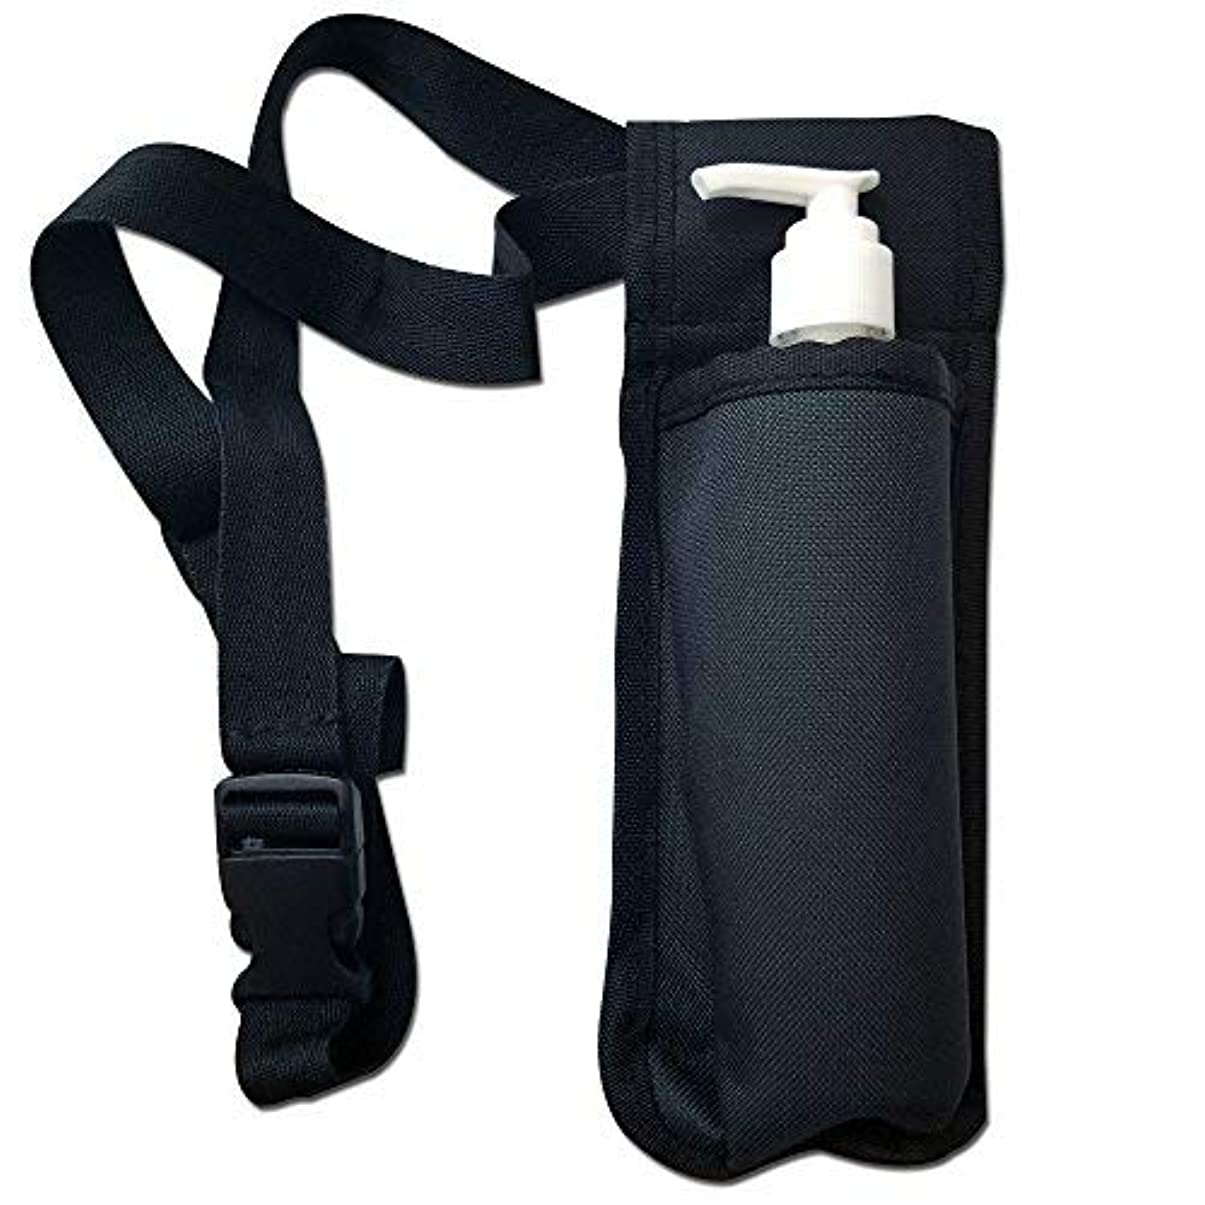 ポーチ違法肝TOA Single Bottle Holster Adjustable Strap w/ 6oz Bottle for Massage Oil, Lotion, Cream [並行輸入品]